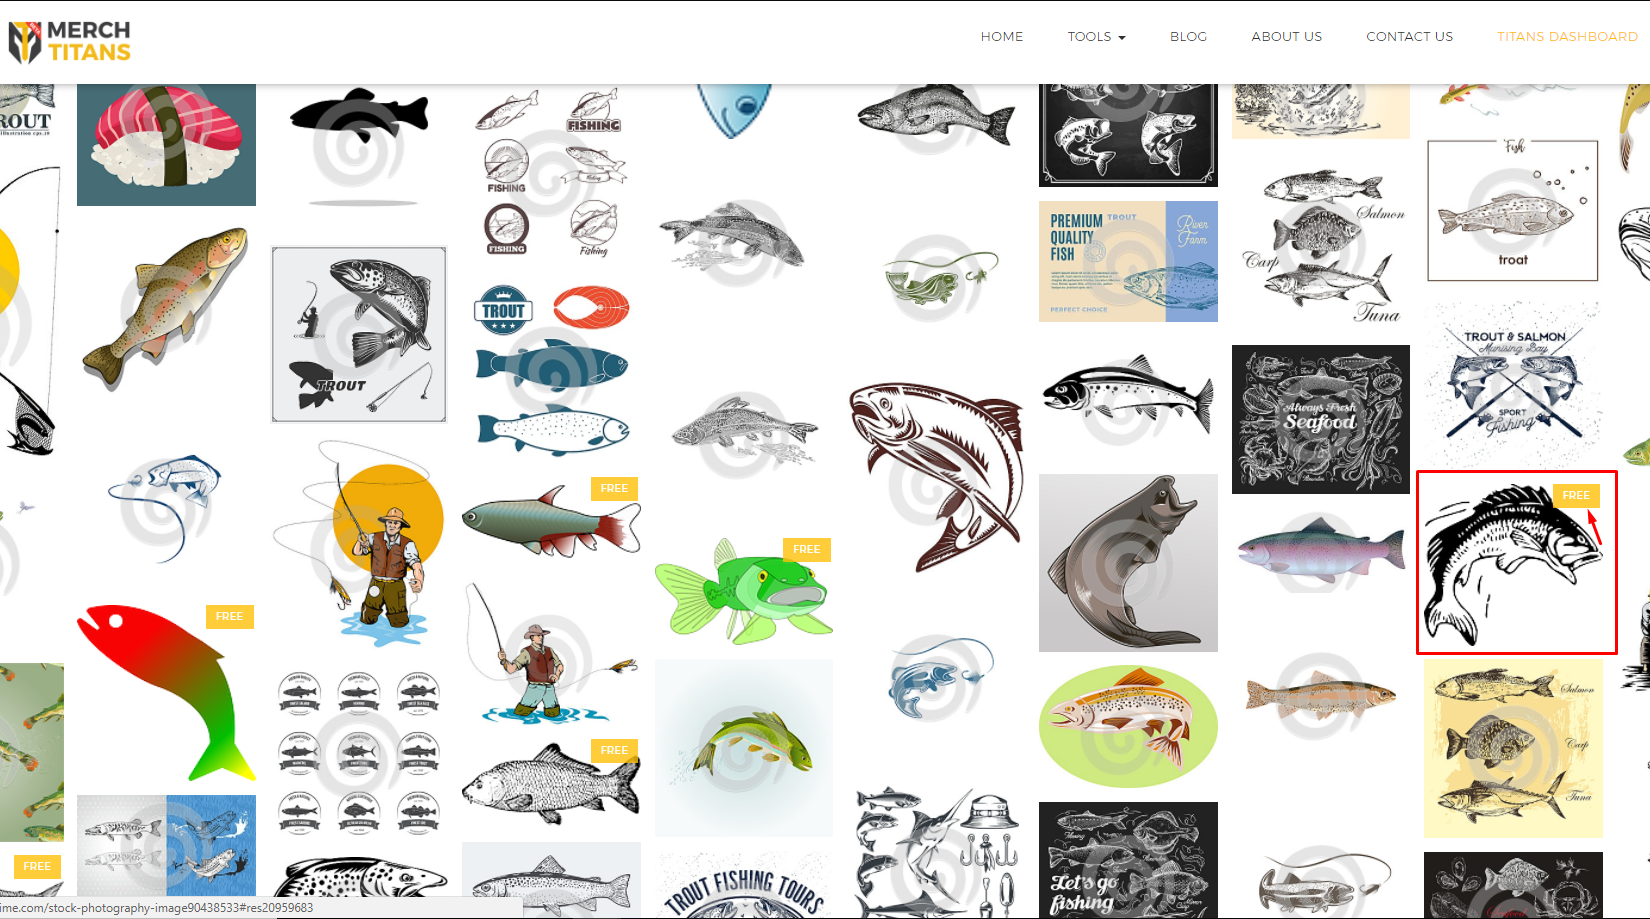 Free Vectors Search for Merch by Amazon T-Shirts Ideas - Trout Search